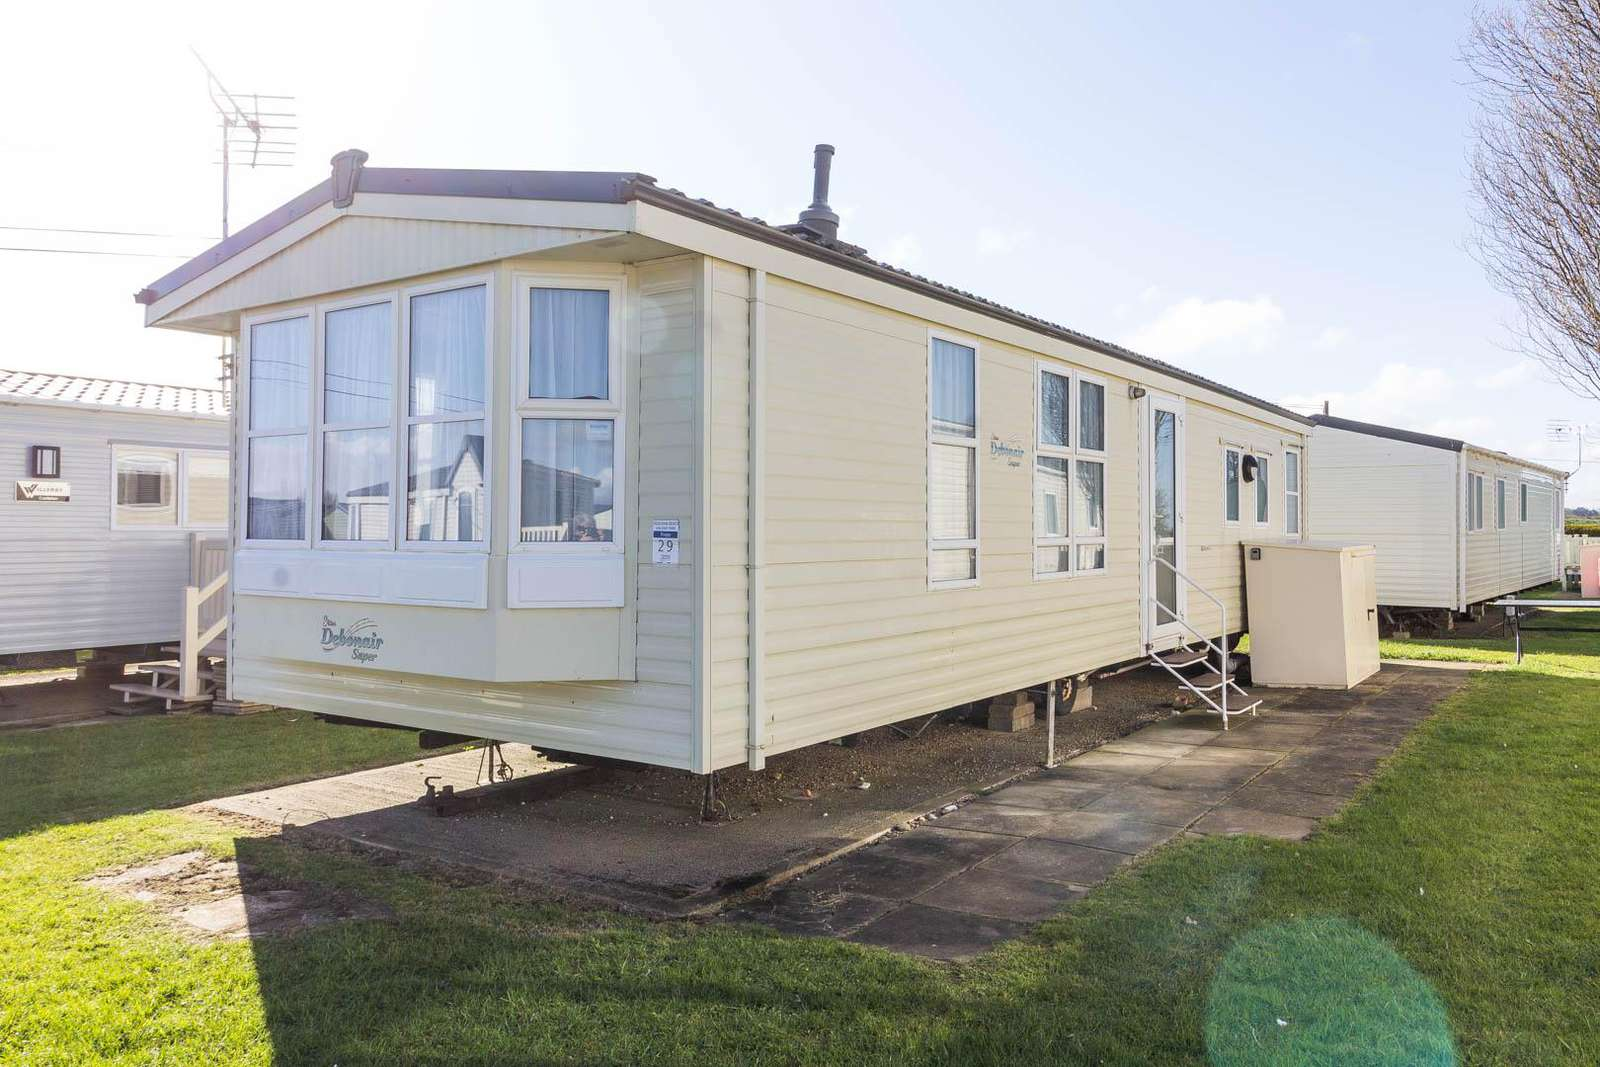 21029T – Thrigby area, 3 bed, 8 berth caravan with D/G and C/H. Diamond rated. - property